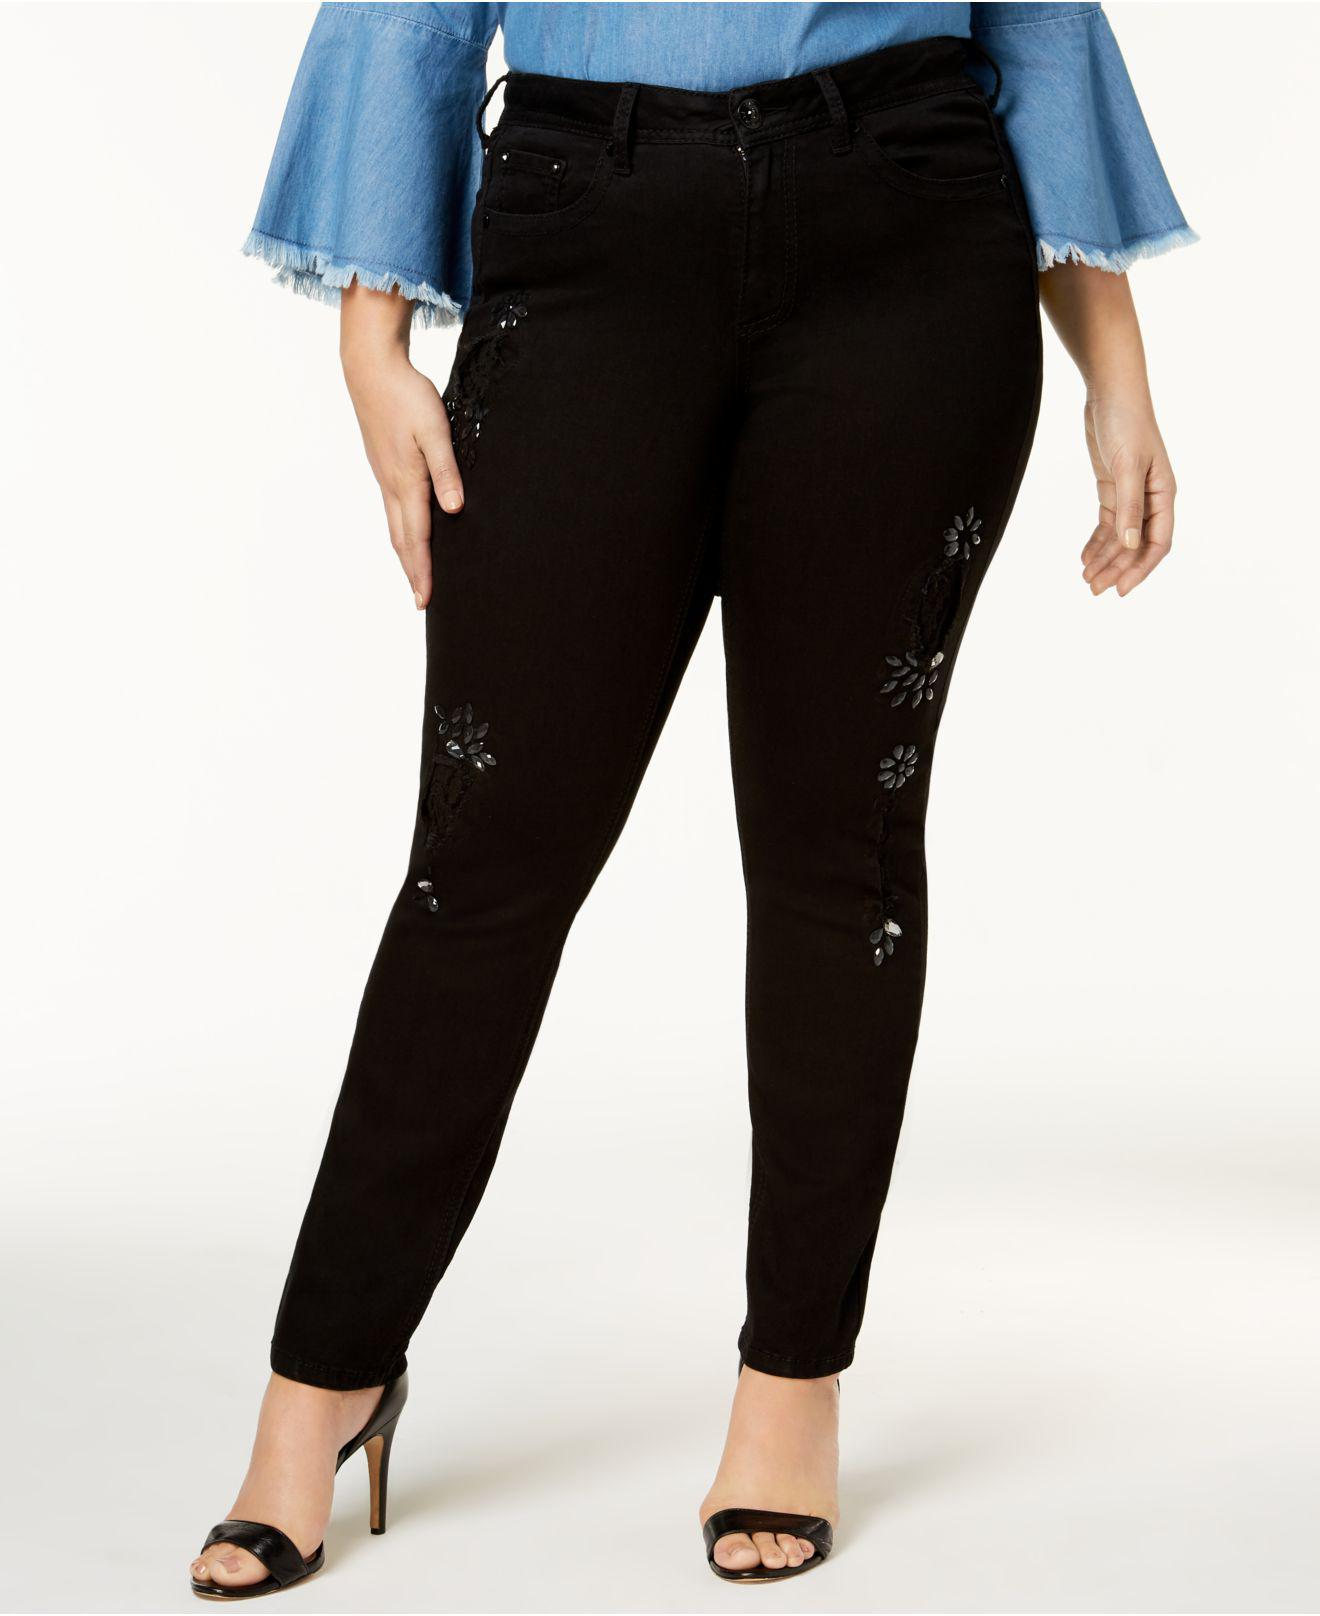 bc26bb0e711 Lyst - Seven7 Trendy Plus Size Ripped Skinny Jeans in Black